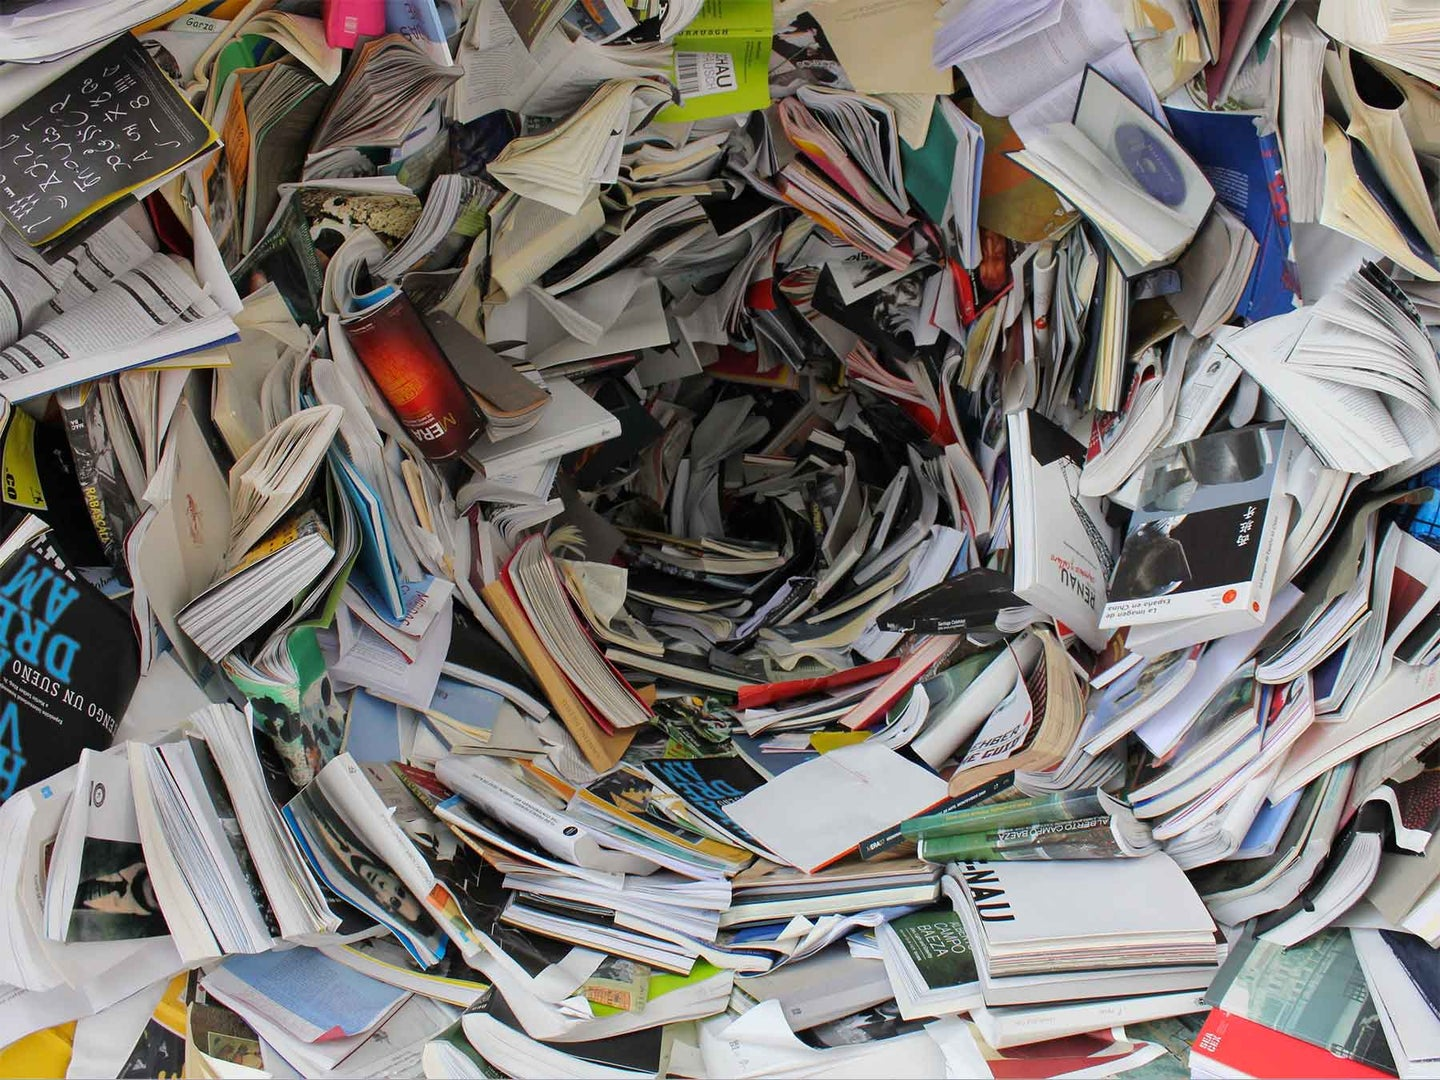 Stacks and stacks of papers